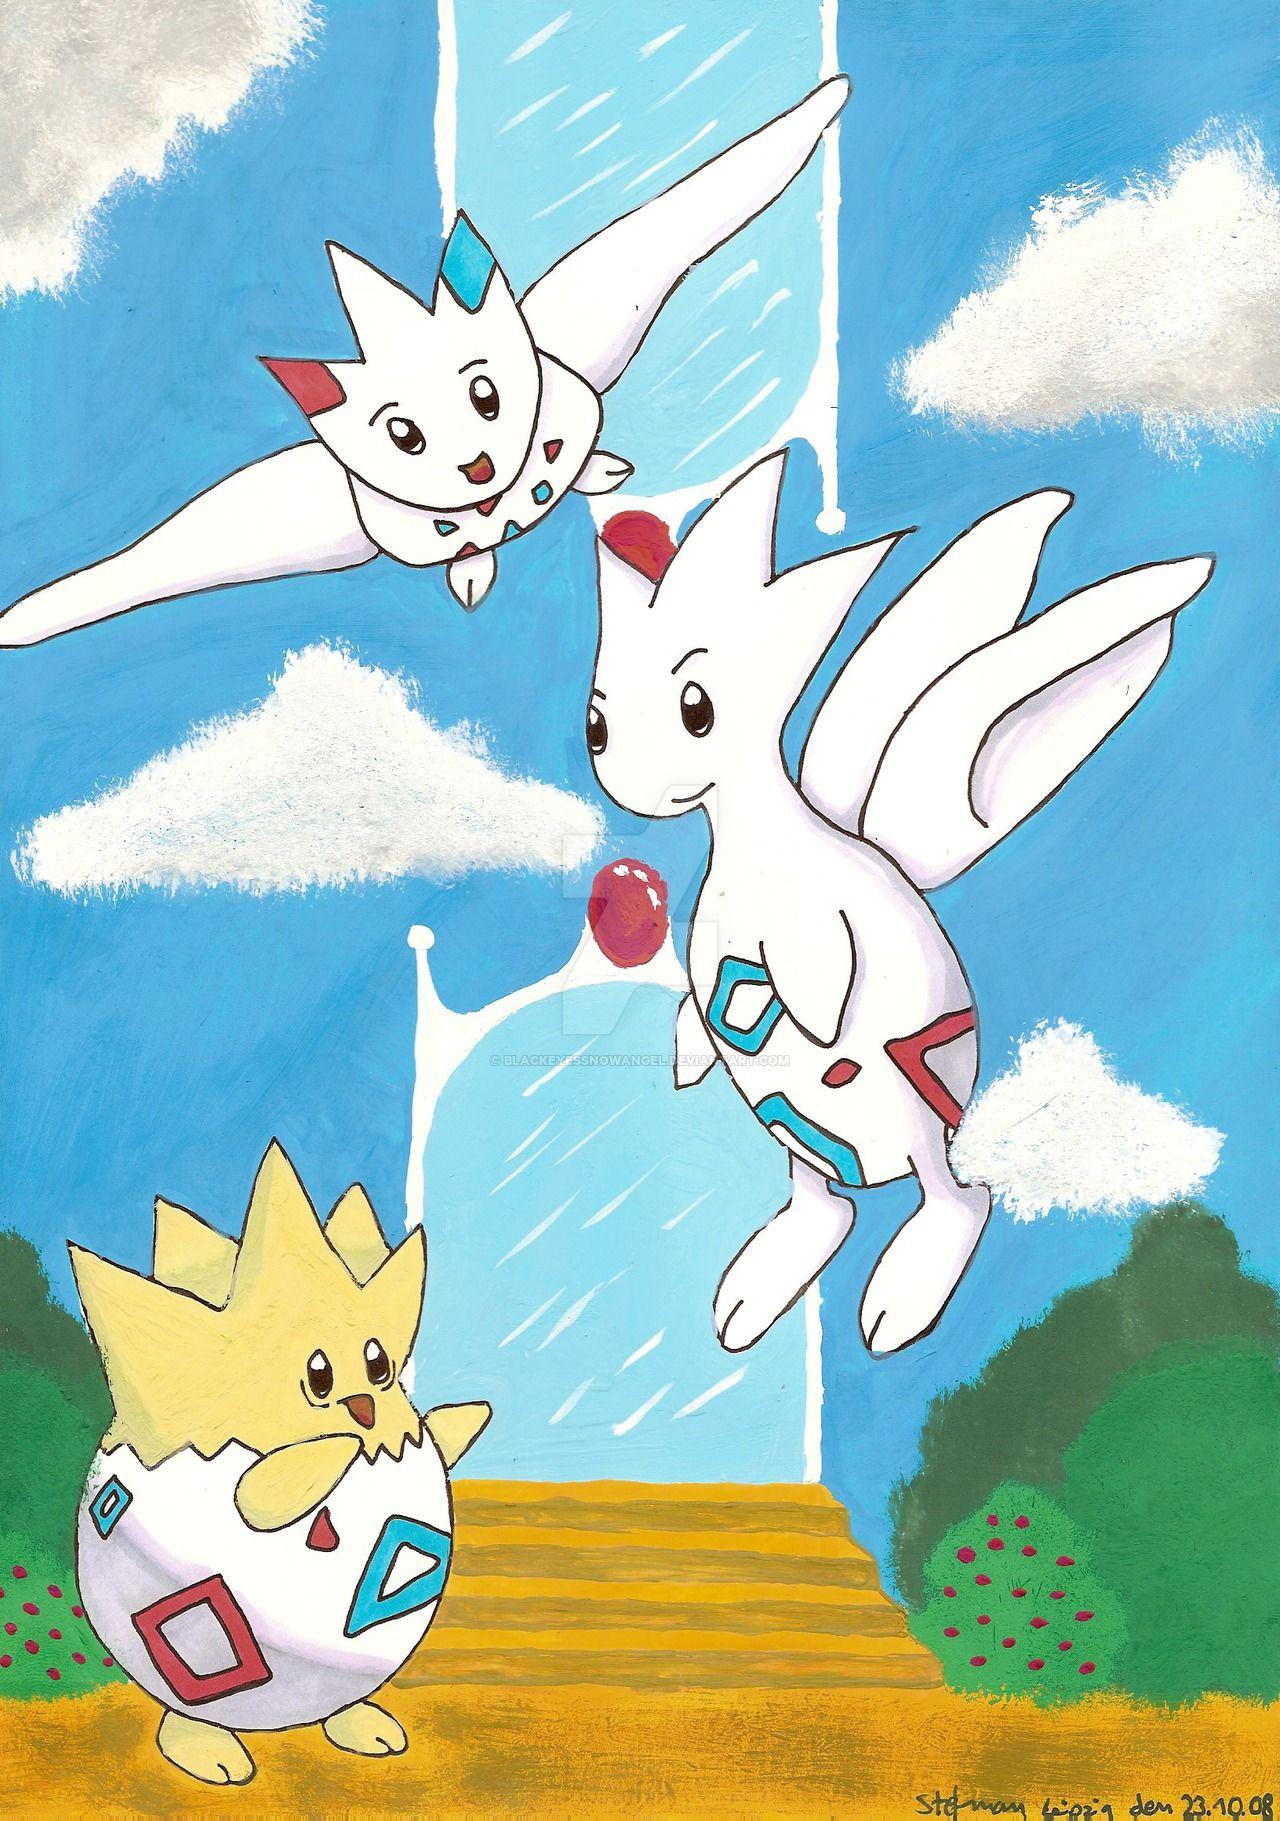 Togepi, Togetic and Togekiss by BlackEyesSnowAngel on DeviantArt